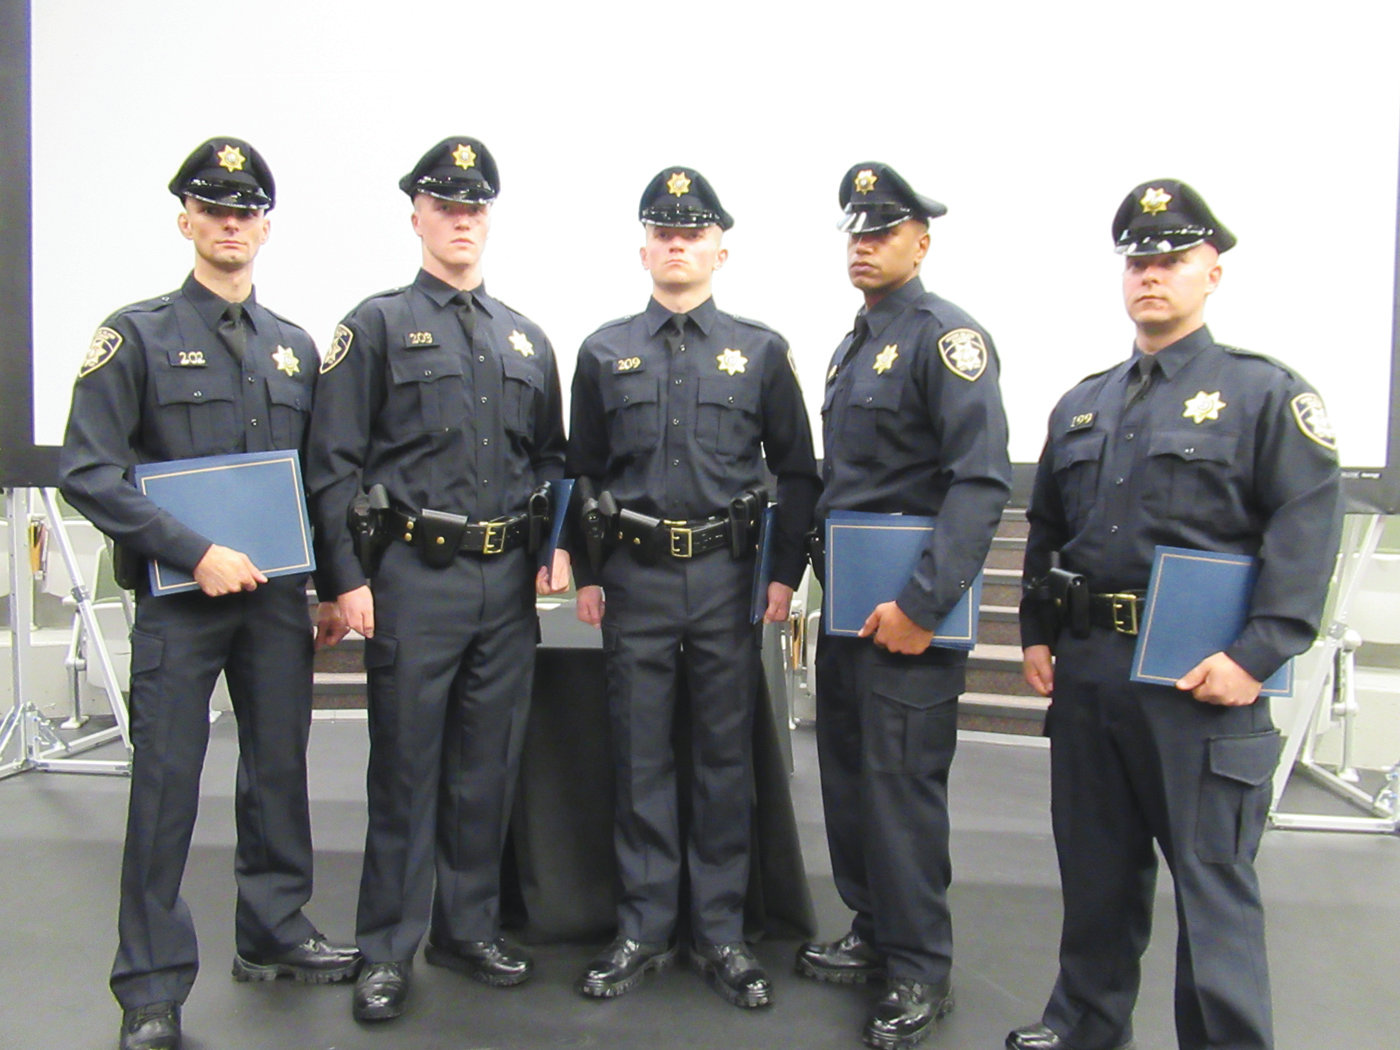 AWESOME AWARDS: These men won individual recognition awards during the grueling 7-week RI Sheriffs Recruit Training Academy. They are from left: John D. Dubois, Valedictorian; Bryan T. Boden, Physical Fitness; Samuel D. Kershaw, Firearms; Francisco A. Picon, Leadership; and Jeffrey St. Jean, Peer Recognition.